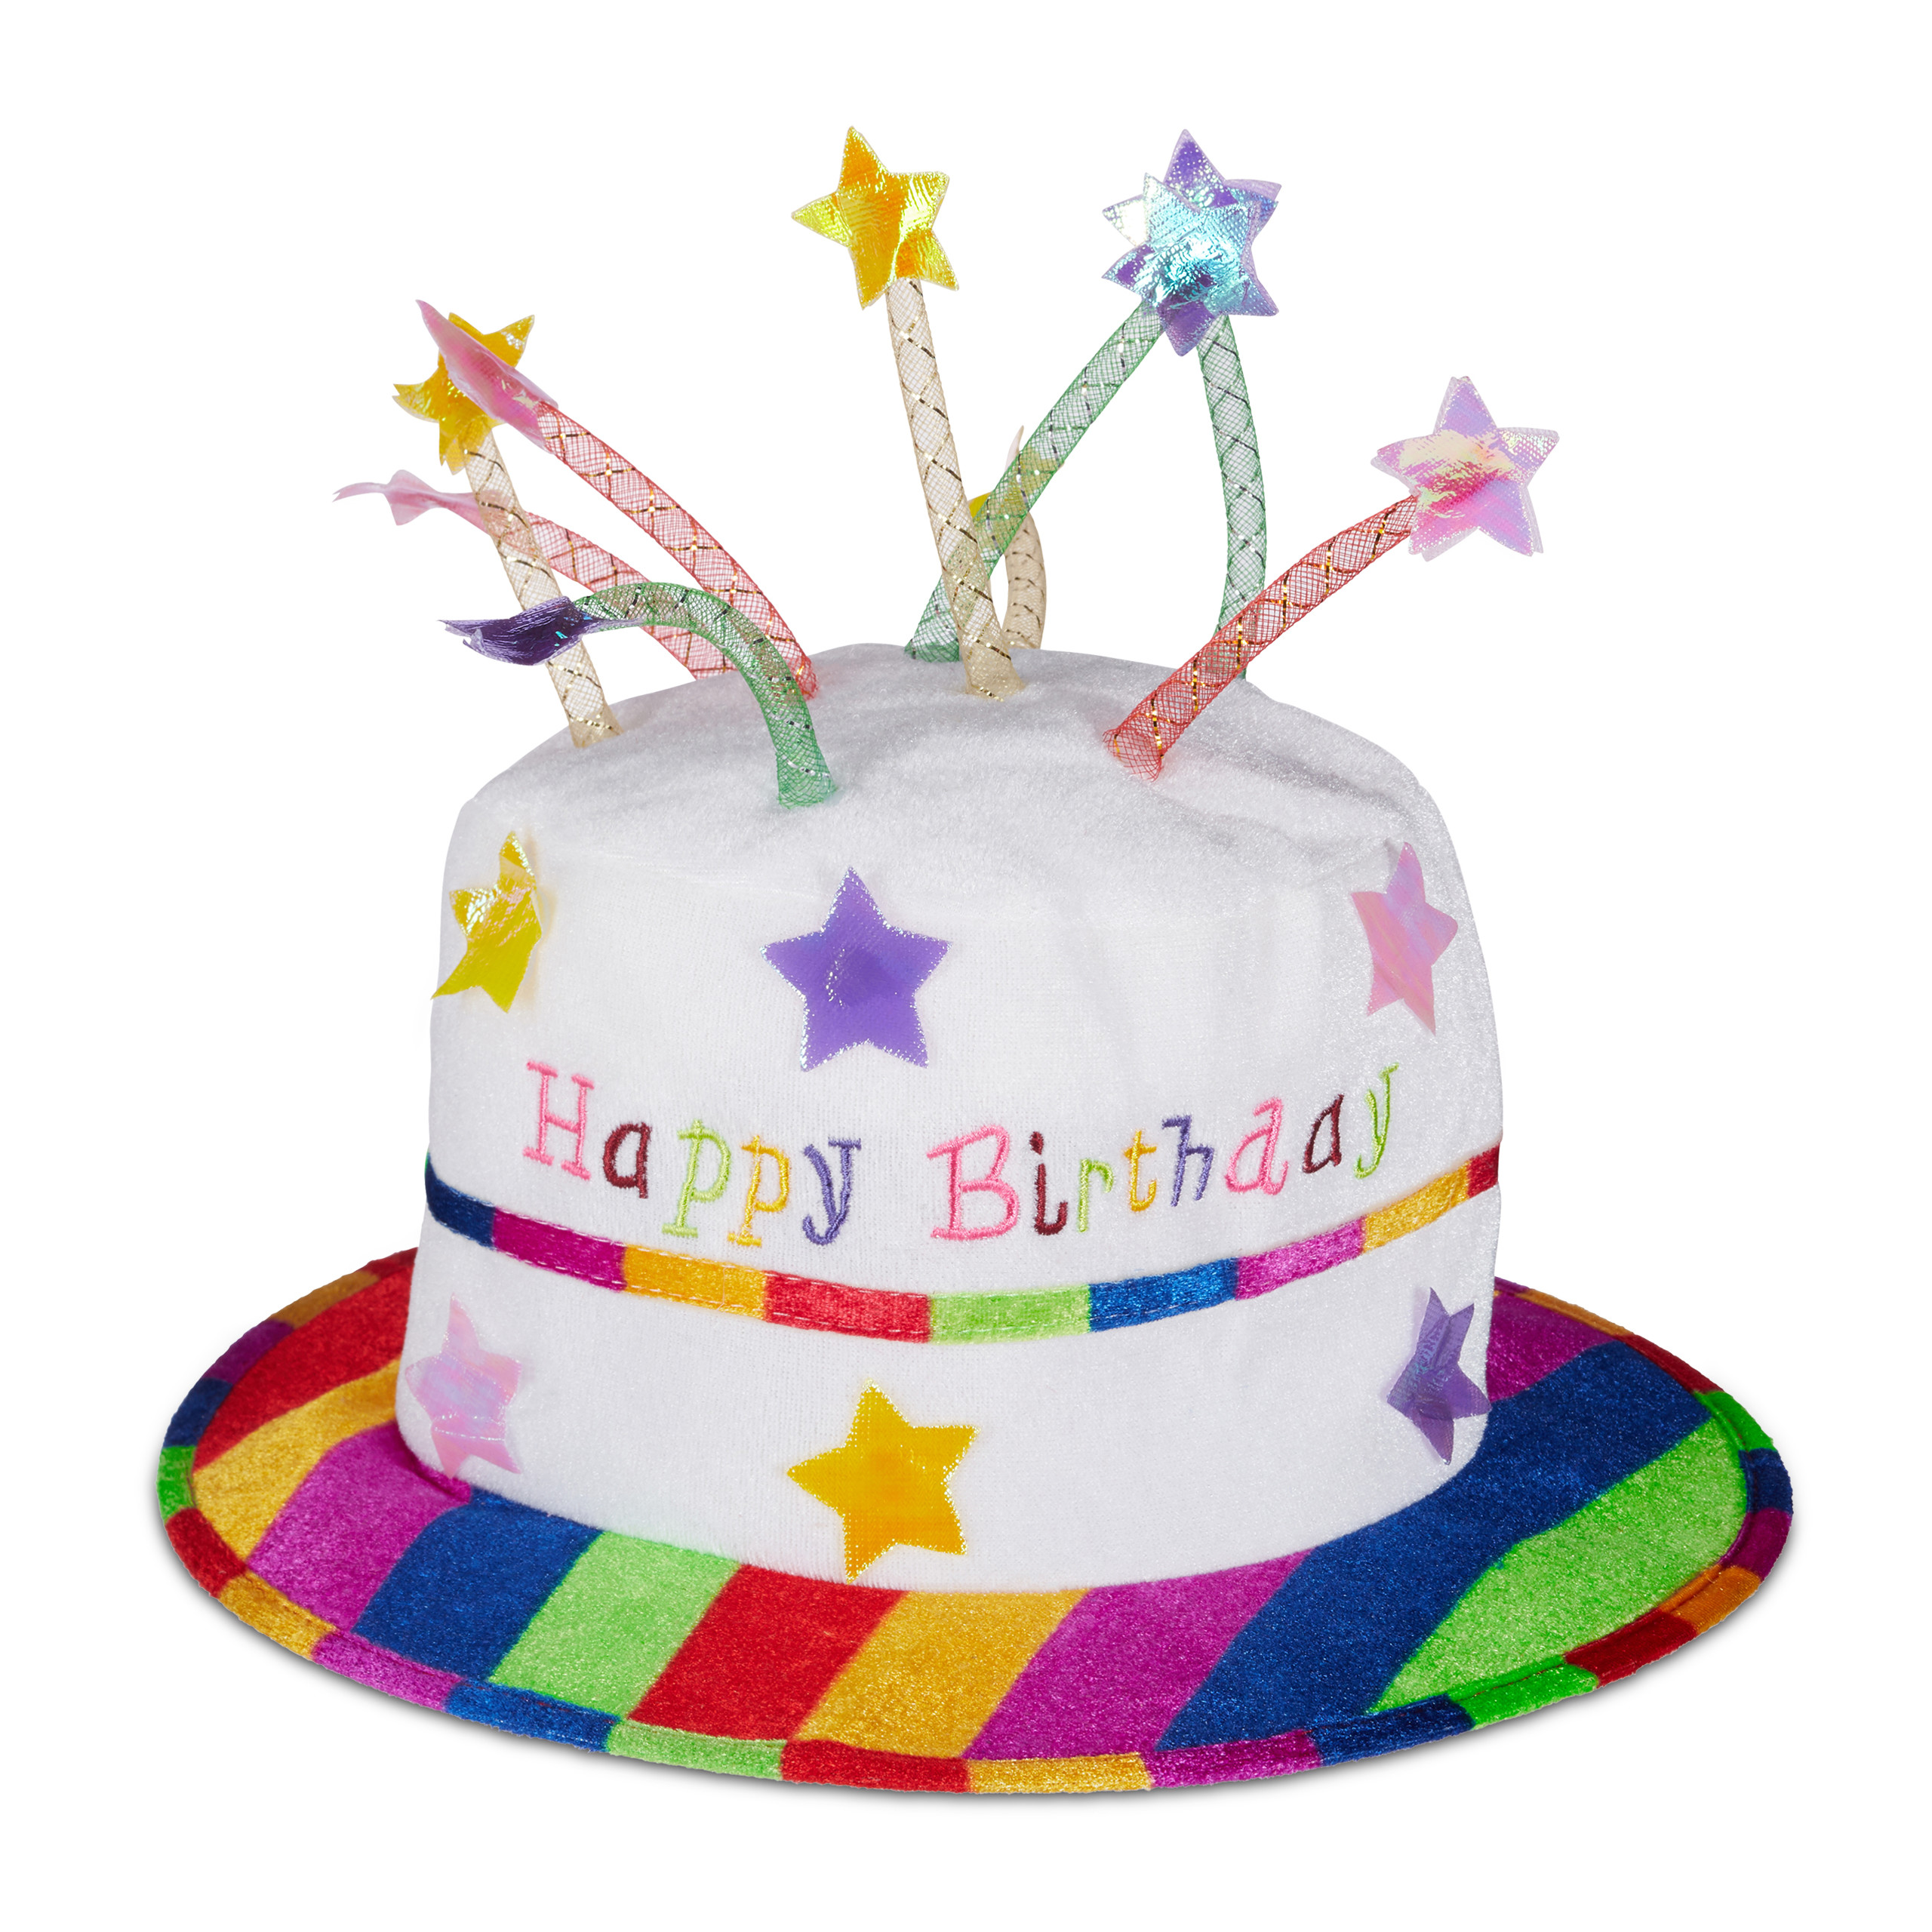 Happy Birthday Cake Hat Plush Fabric Party Hat With Candles